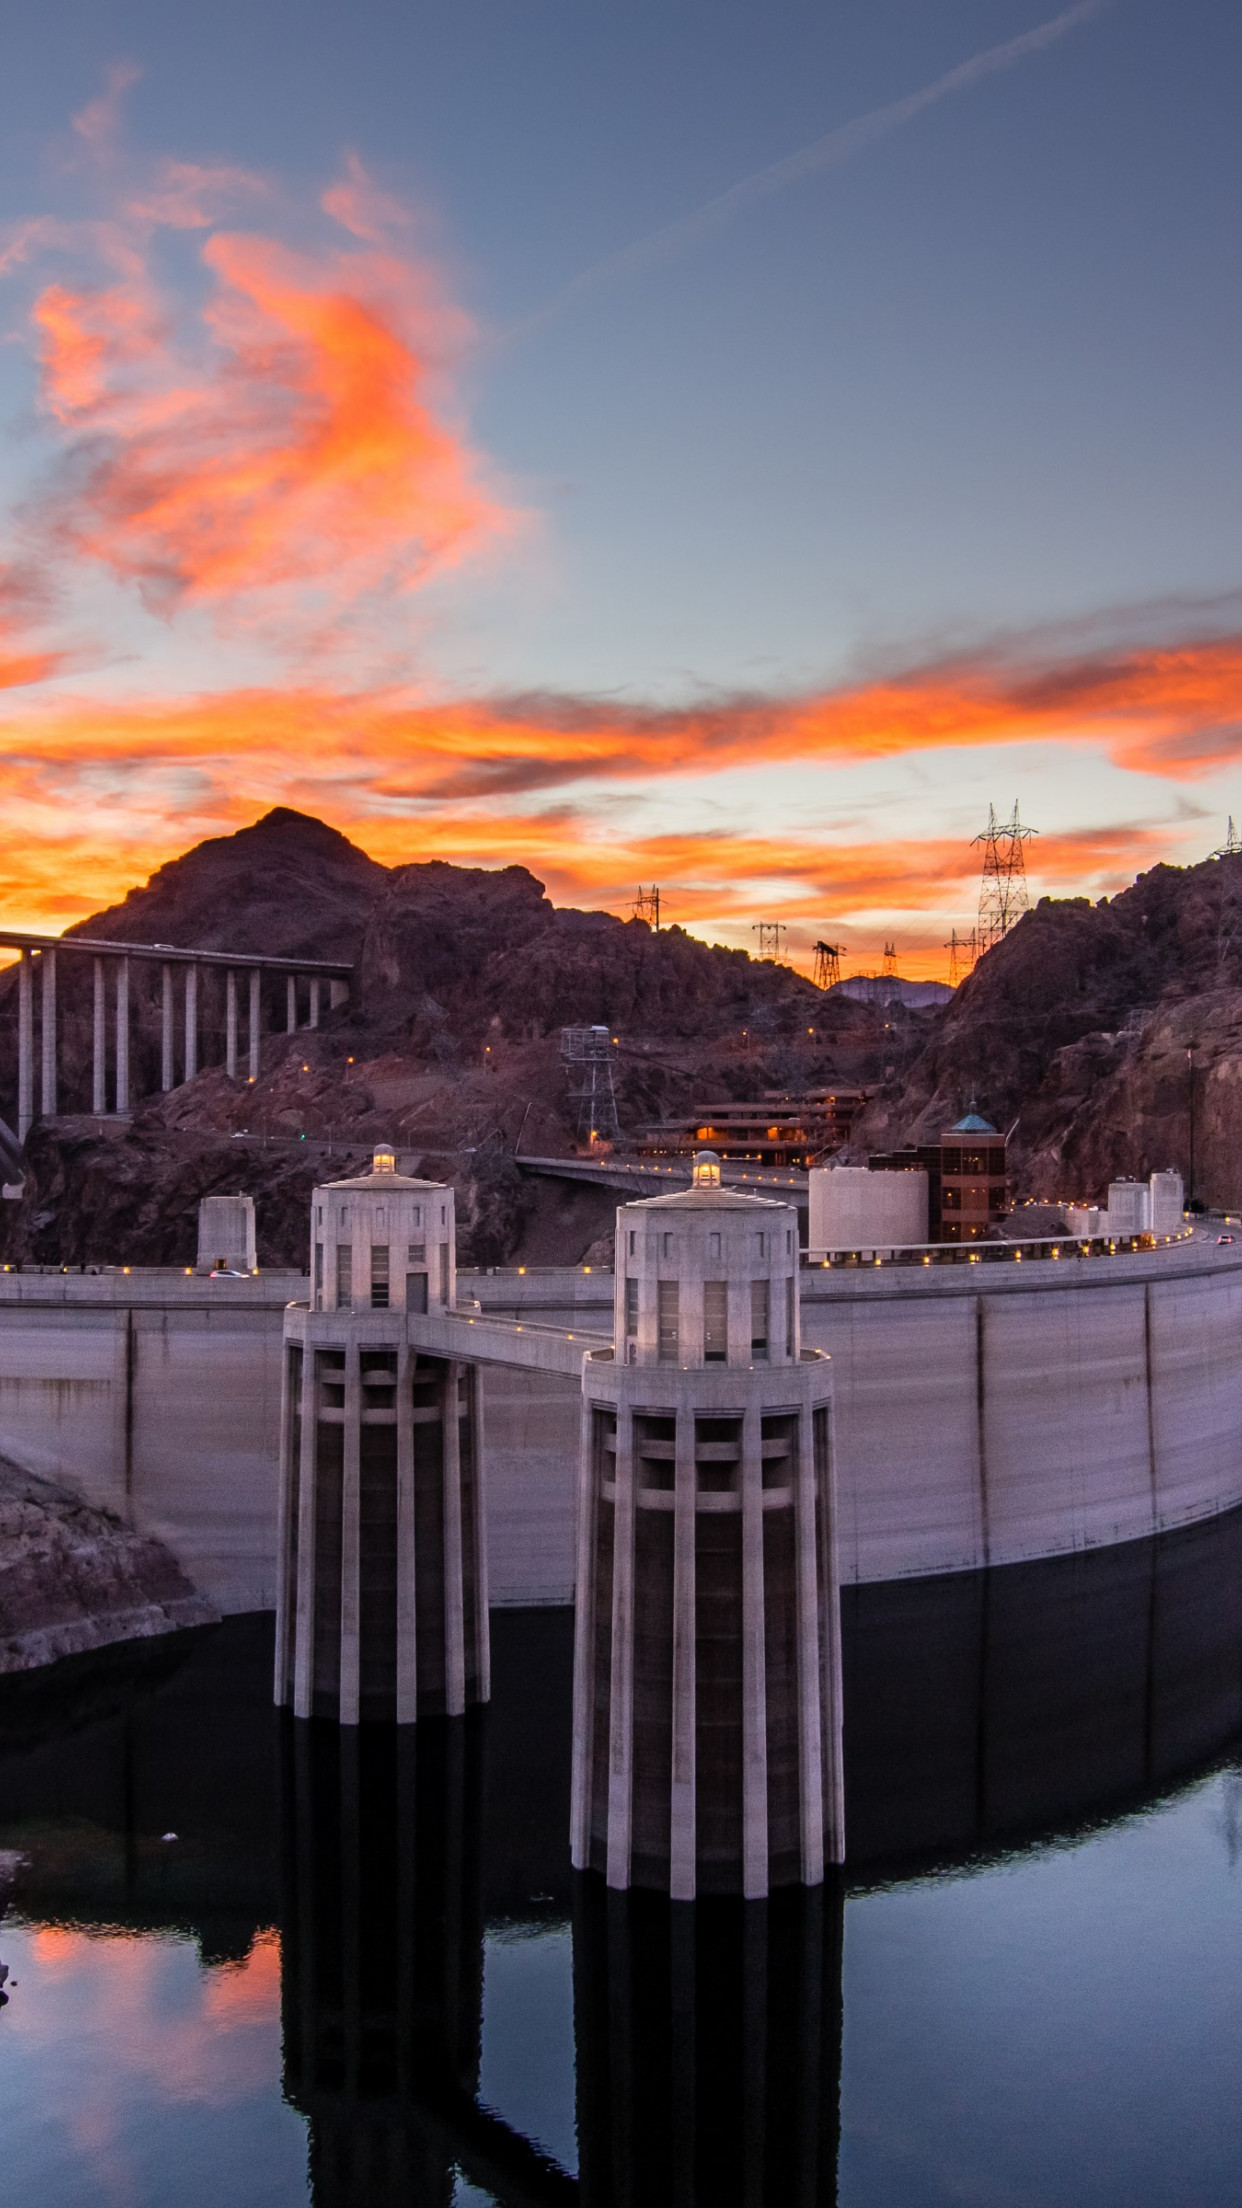 Hoover Dam at sunset | 1242x2208 wallpaper